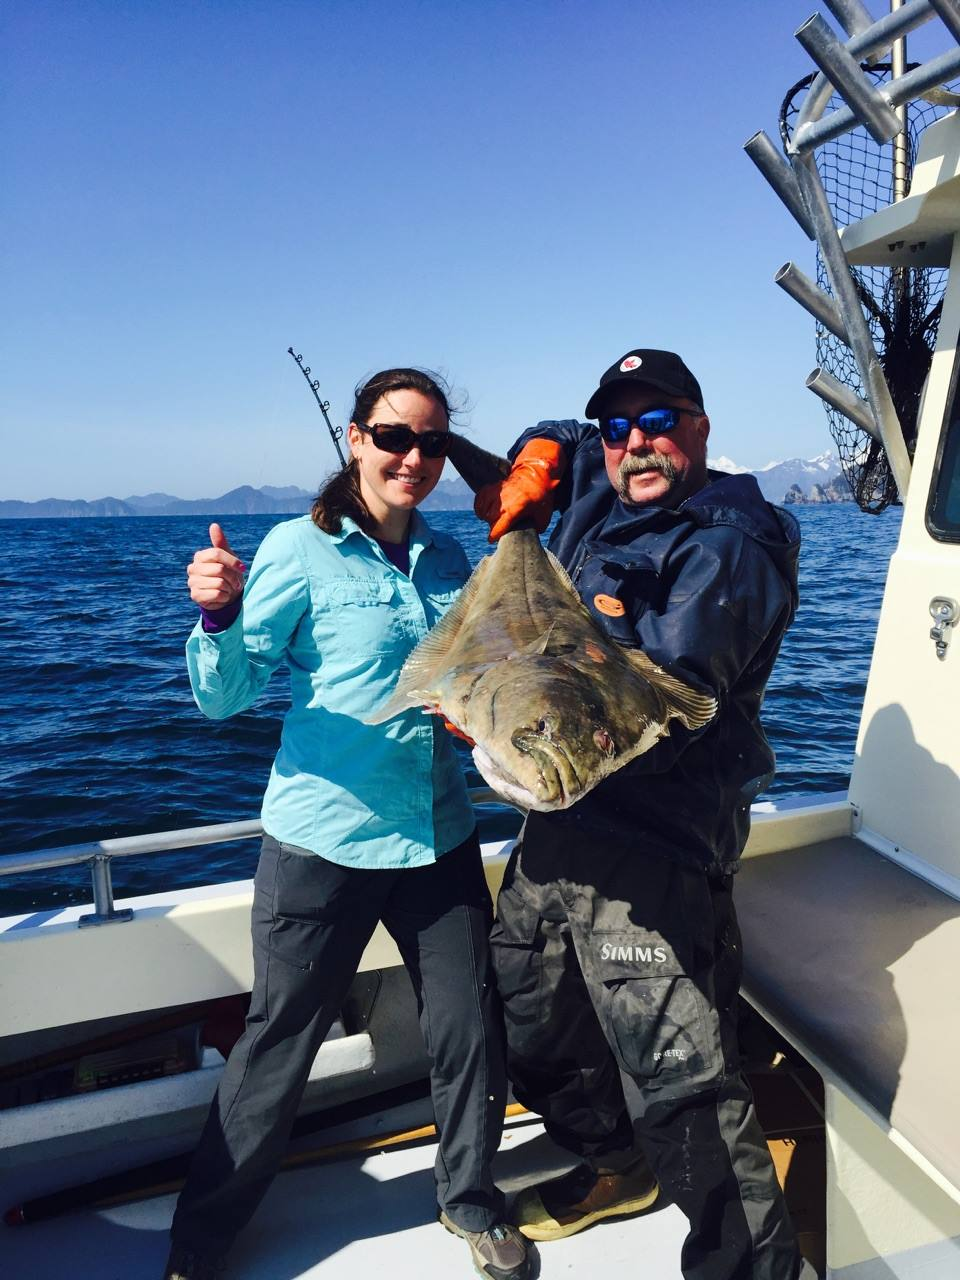 It's a beautiful day in May to catch halibut!...